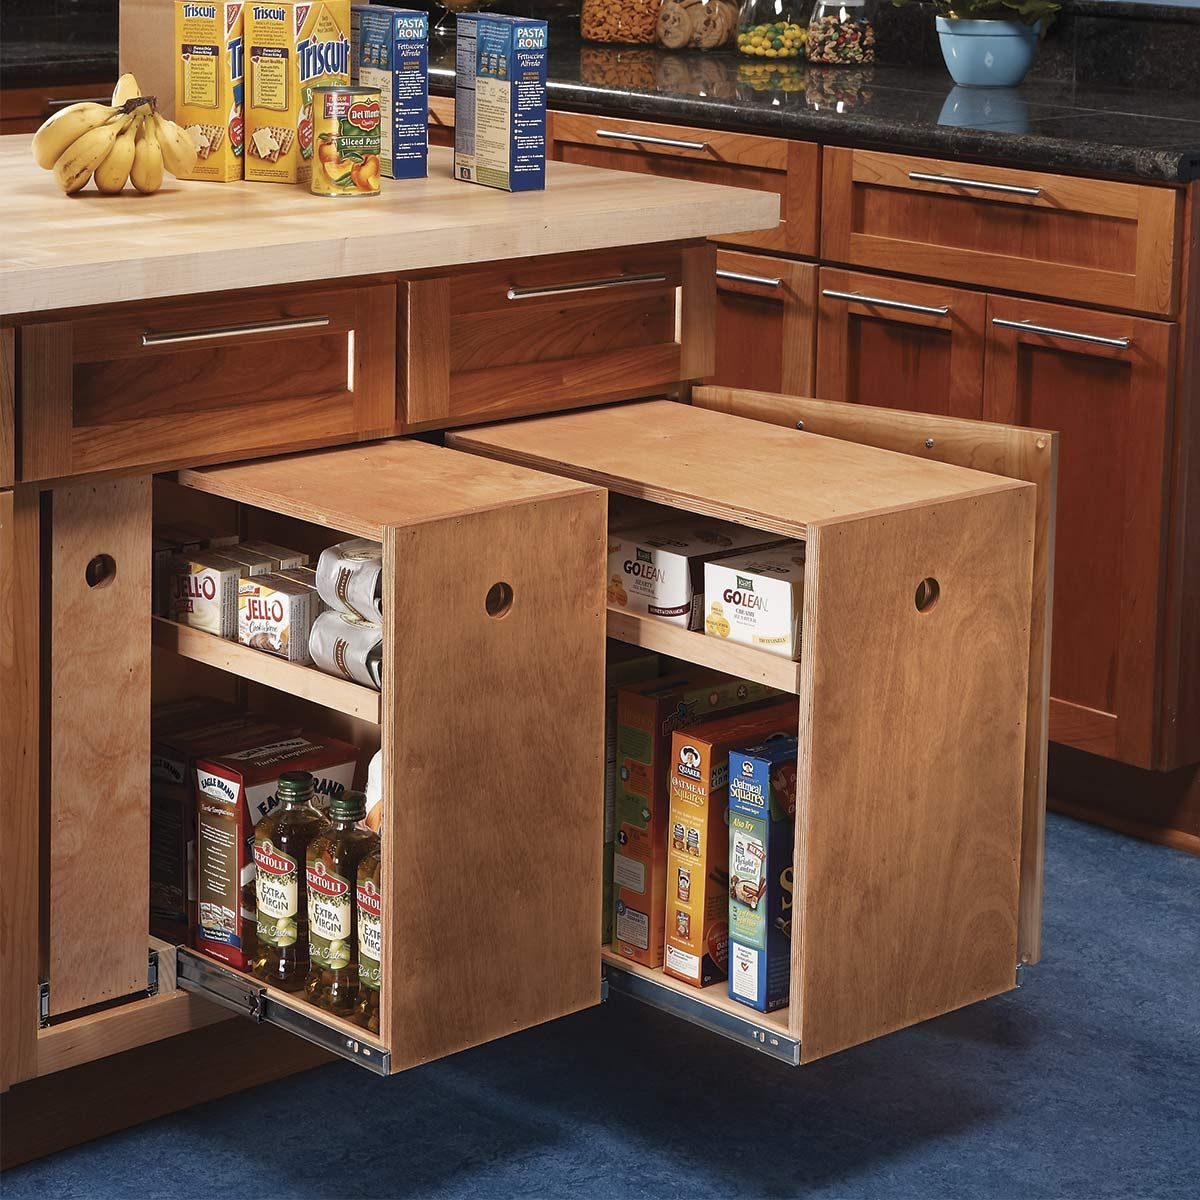 30 Cheap Kitchen Cabinet Add Ons You Can Diy The Family Handyman Cheap Kitchen Cabinets Diy Kitchen Cabinets Diy Kitchen